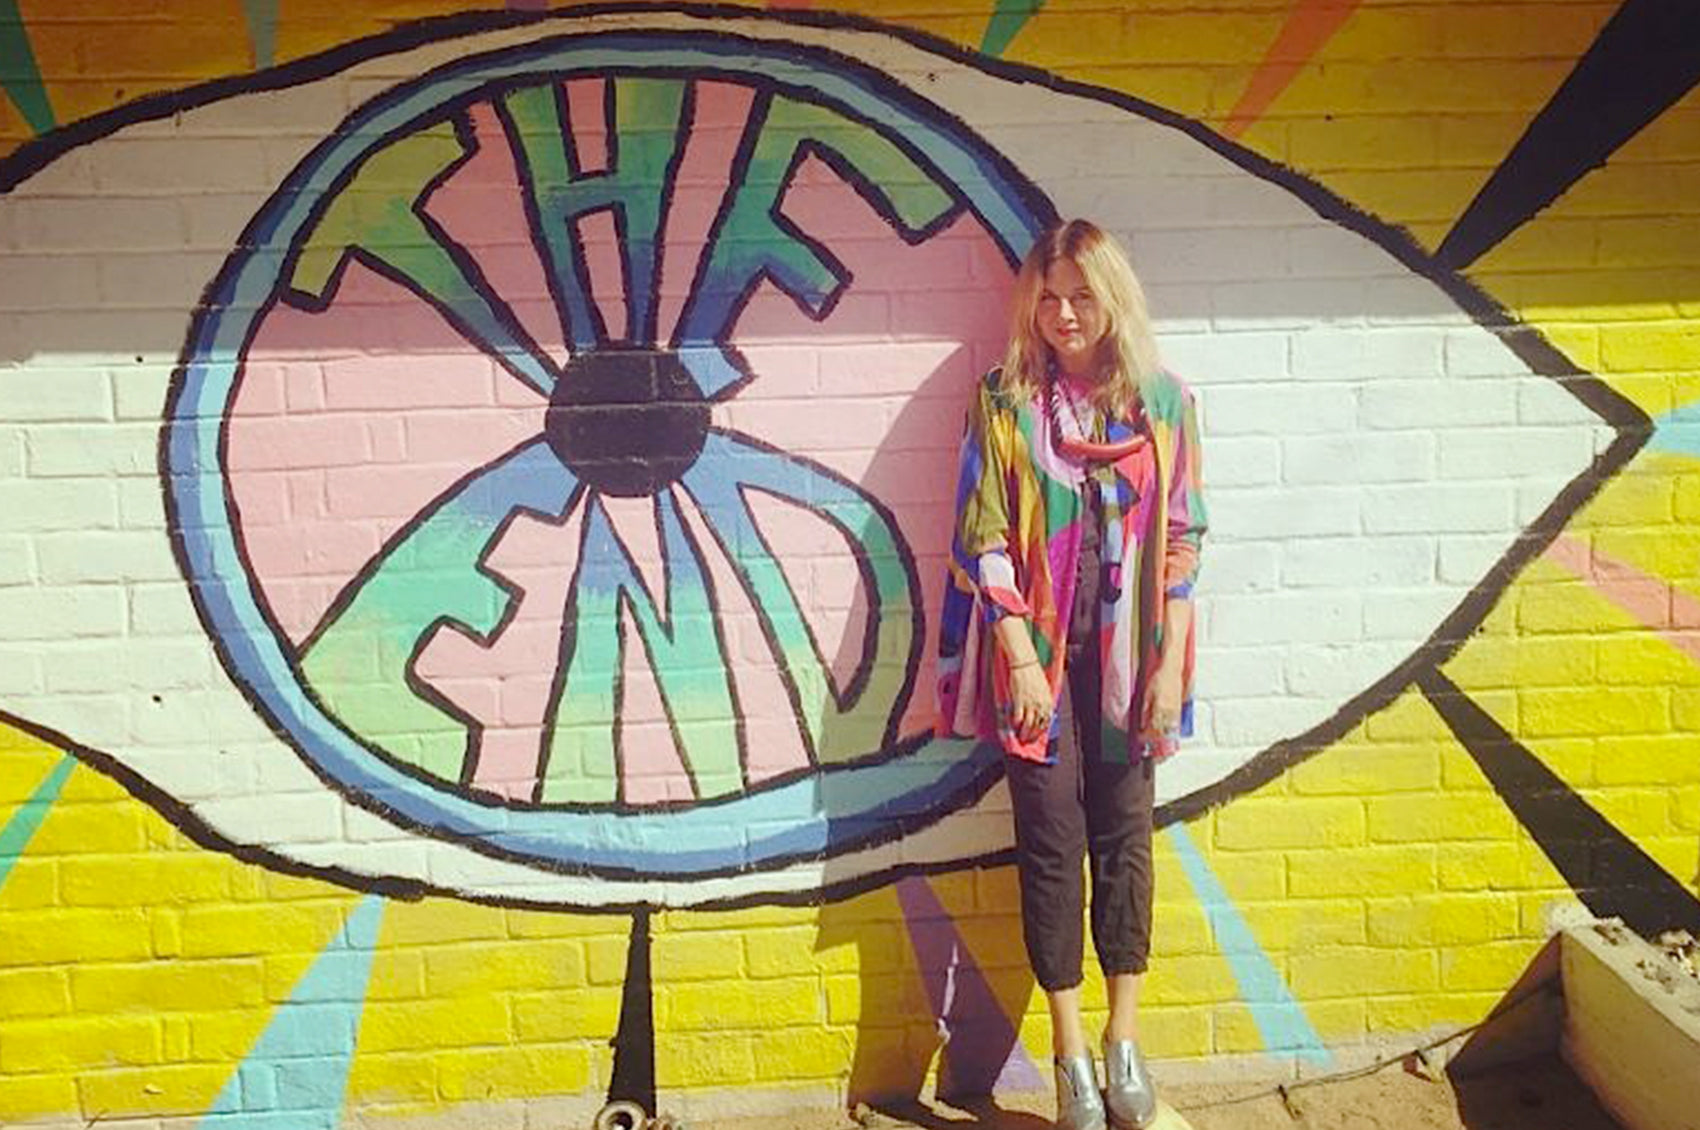 Kime standing in front of her painted The End storefront.